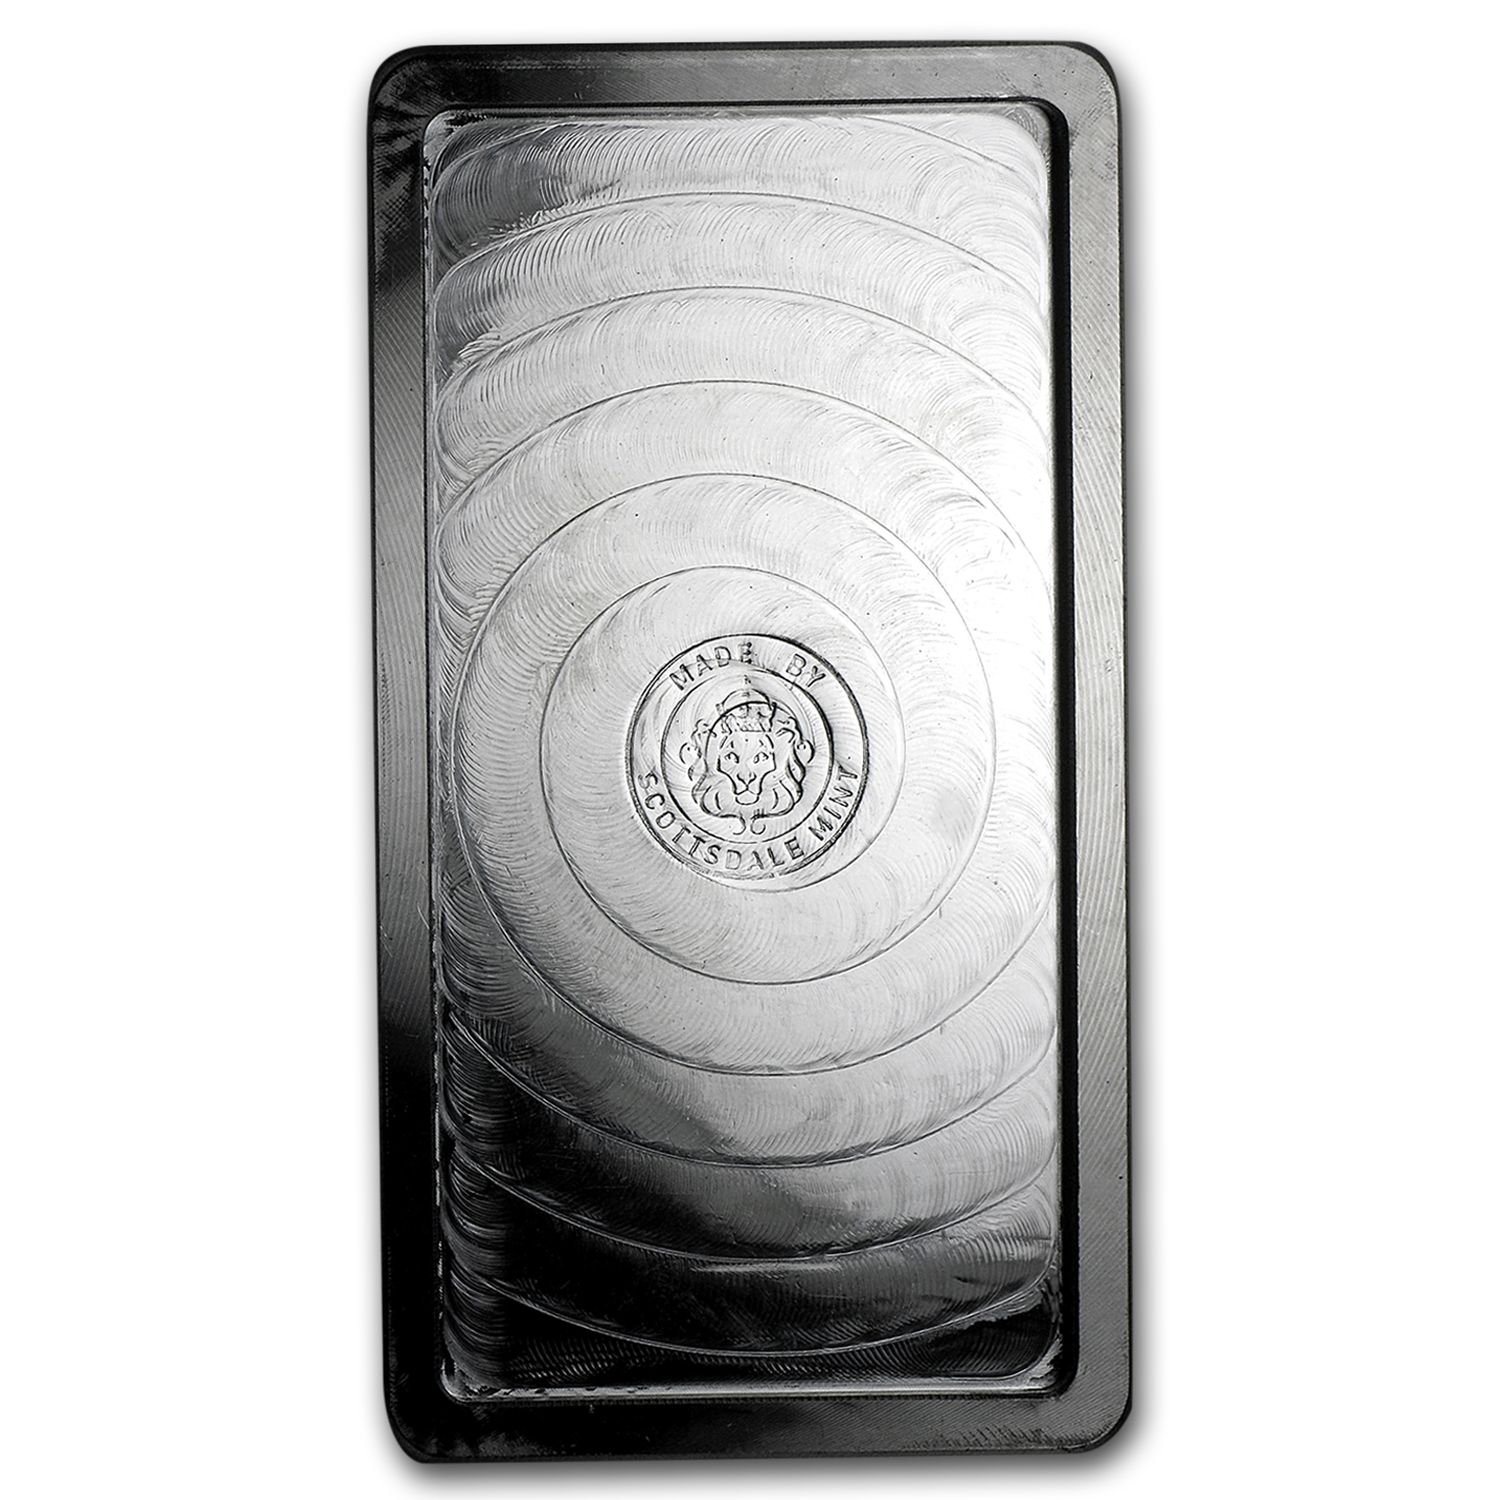 10 oz Silver Bar - Patriot Metals